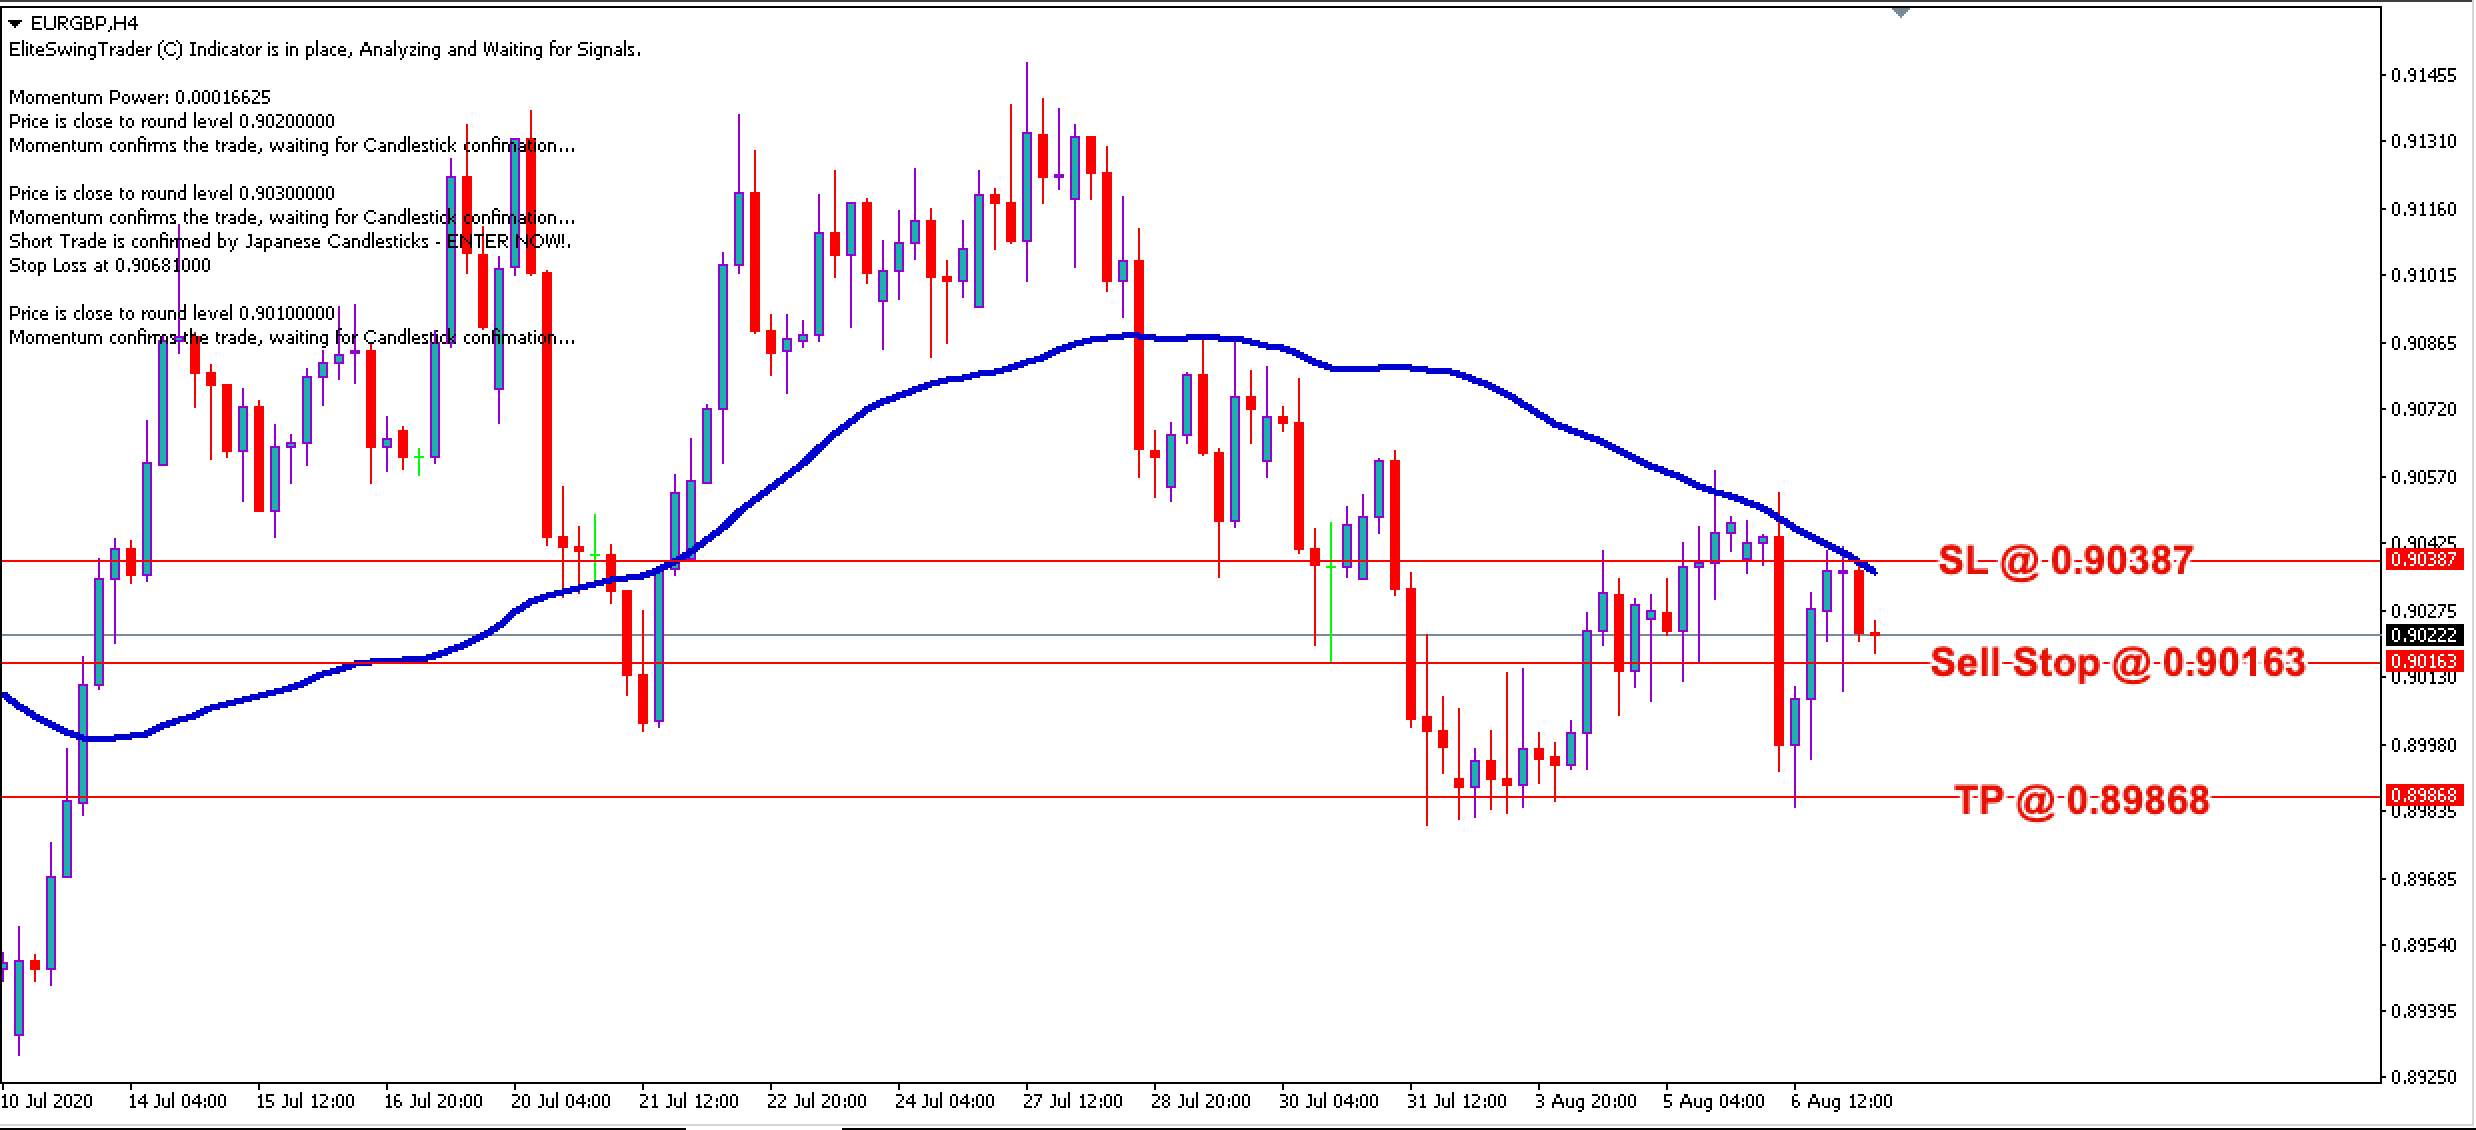 EUR/GBP Daily Price Forecast - 7th August 2020